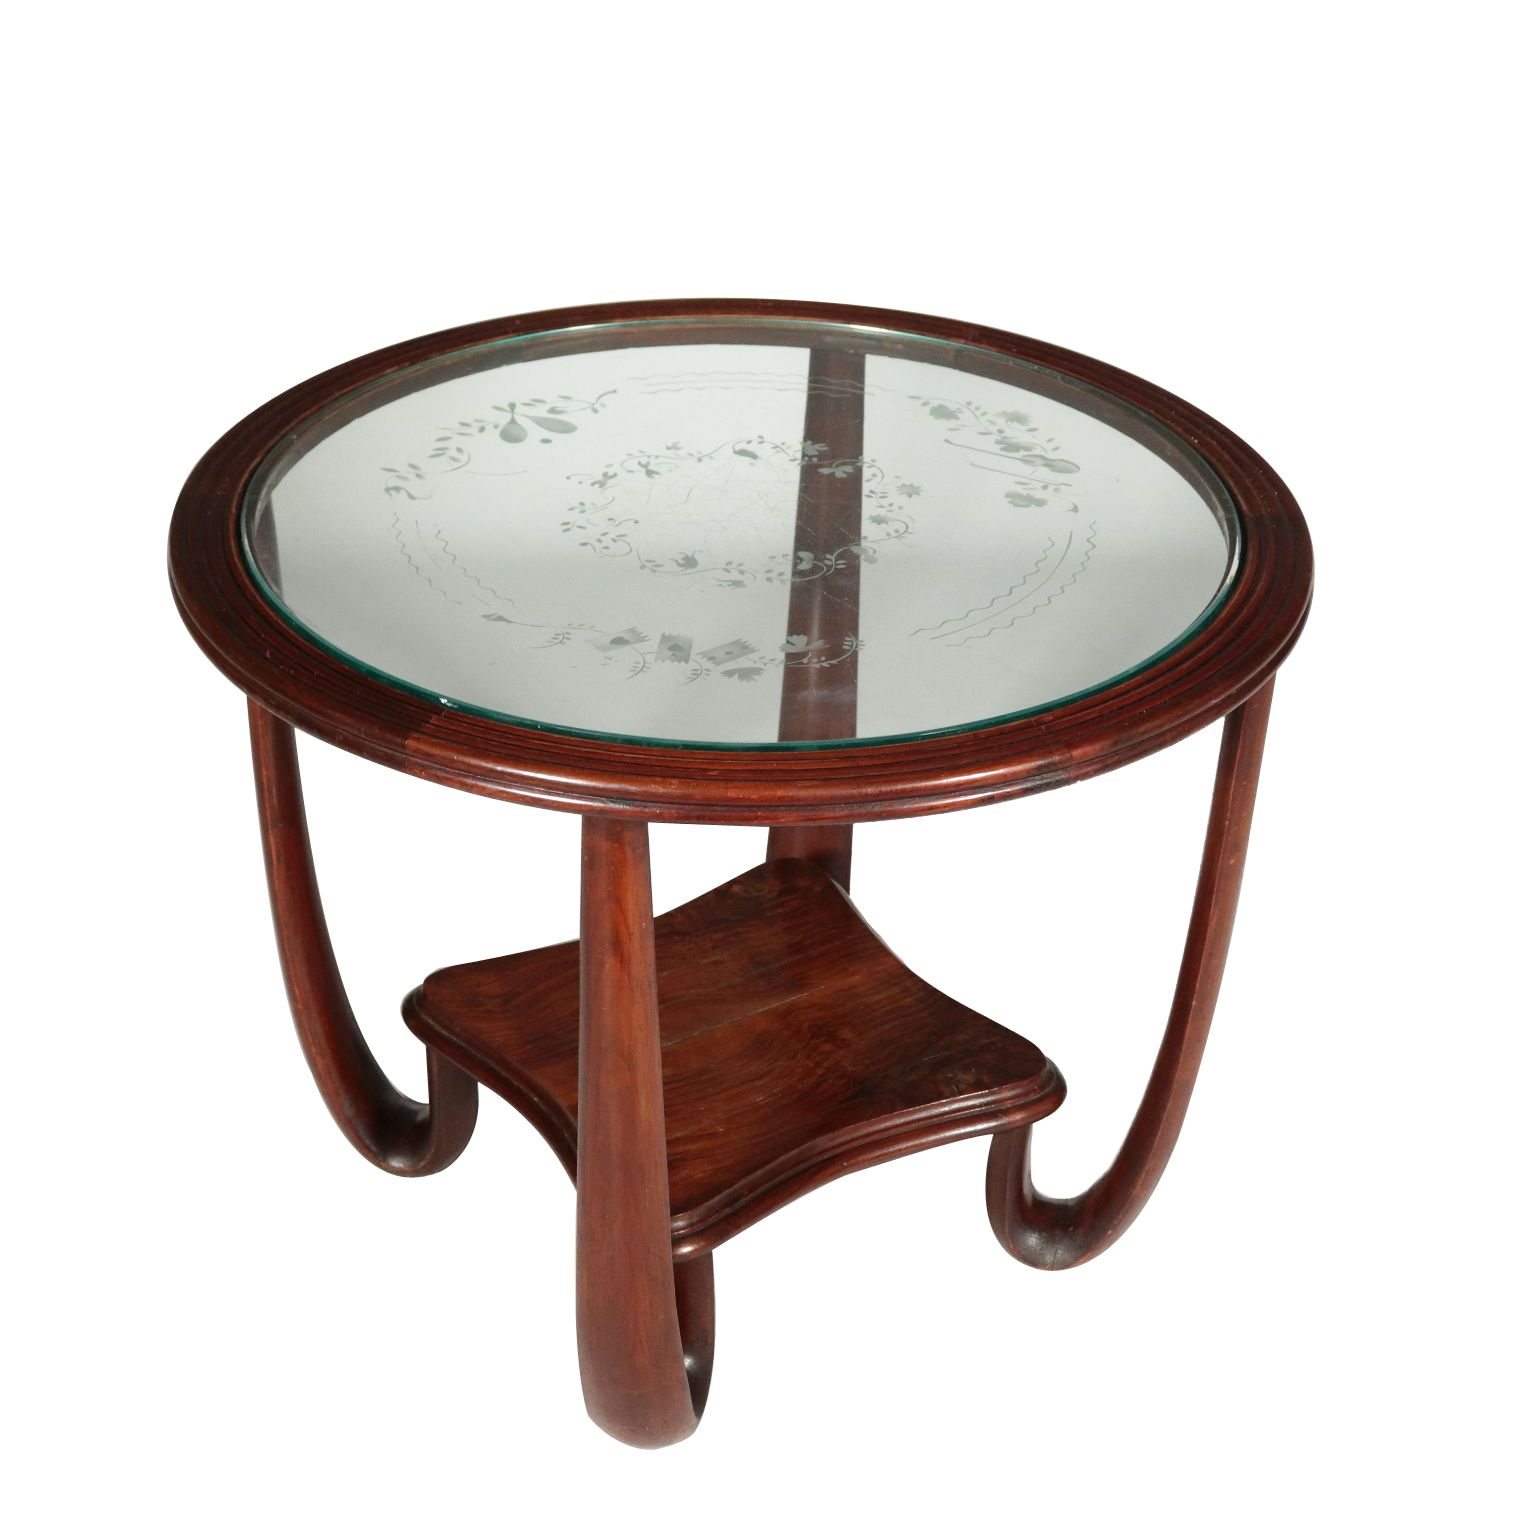 round coffee table vintage italy 1940s